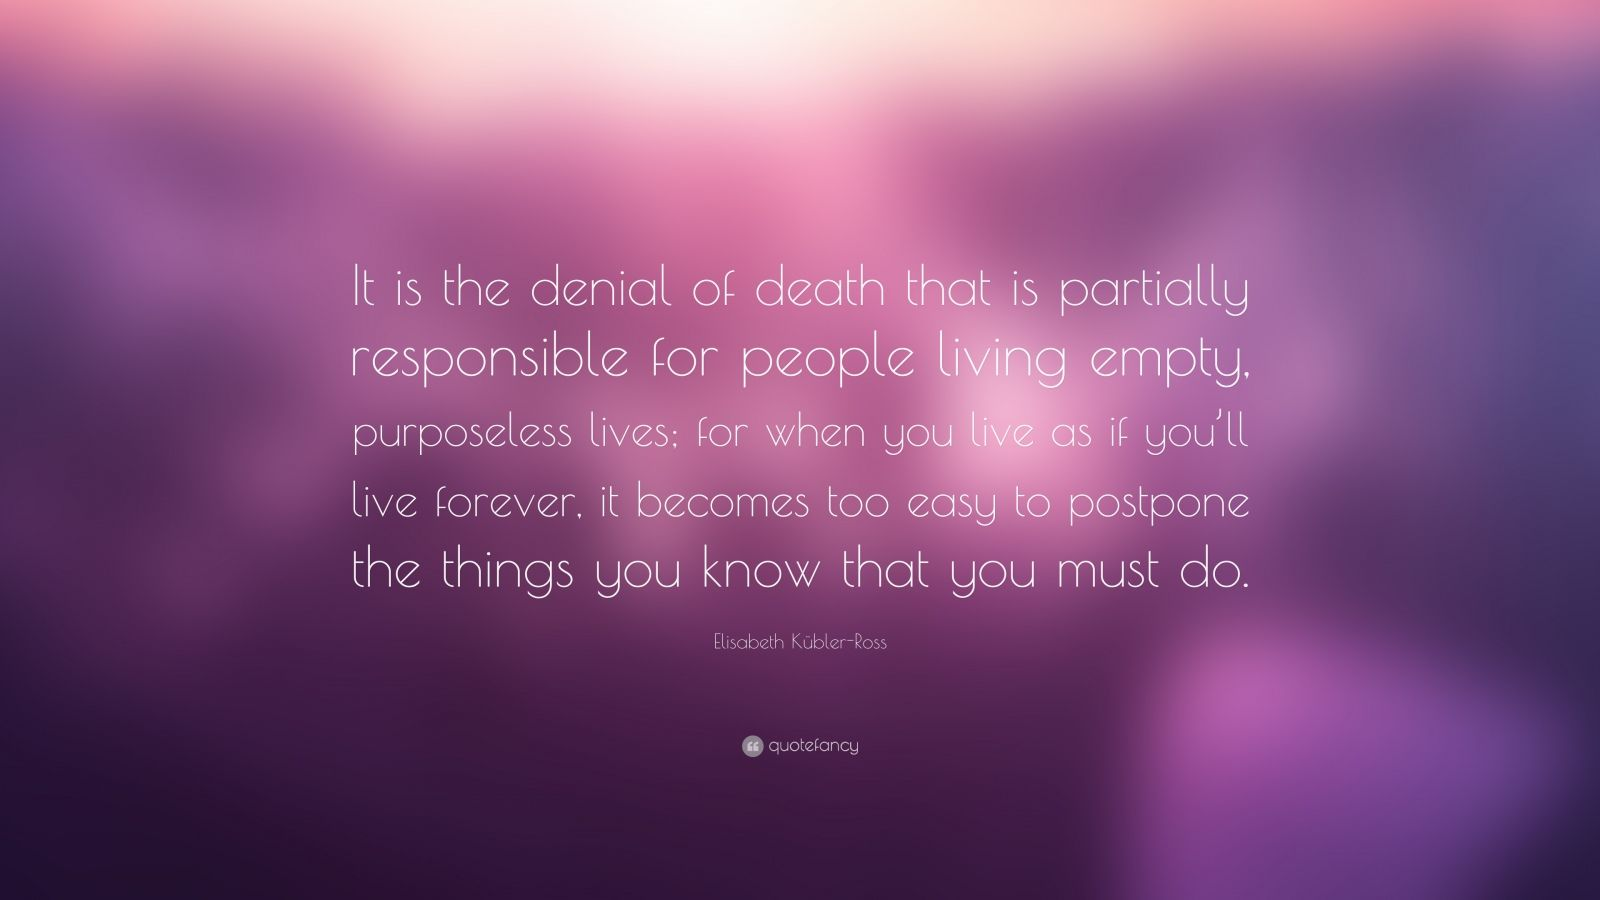 """Elisabeth Kübler-Ross Quote: """"It is the denial of death that is partially responsible for people living empty, purposeless lives; for when you live as if you'll live forever, it becomes too easy to postpone the things you know that you must do."""""""